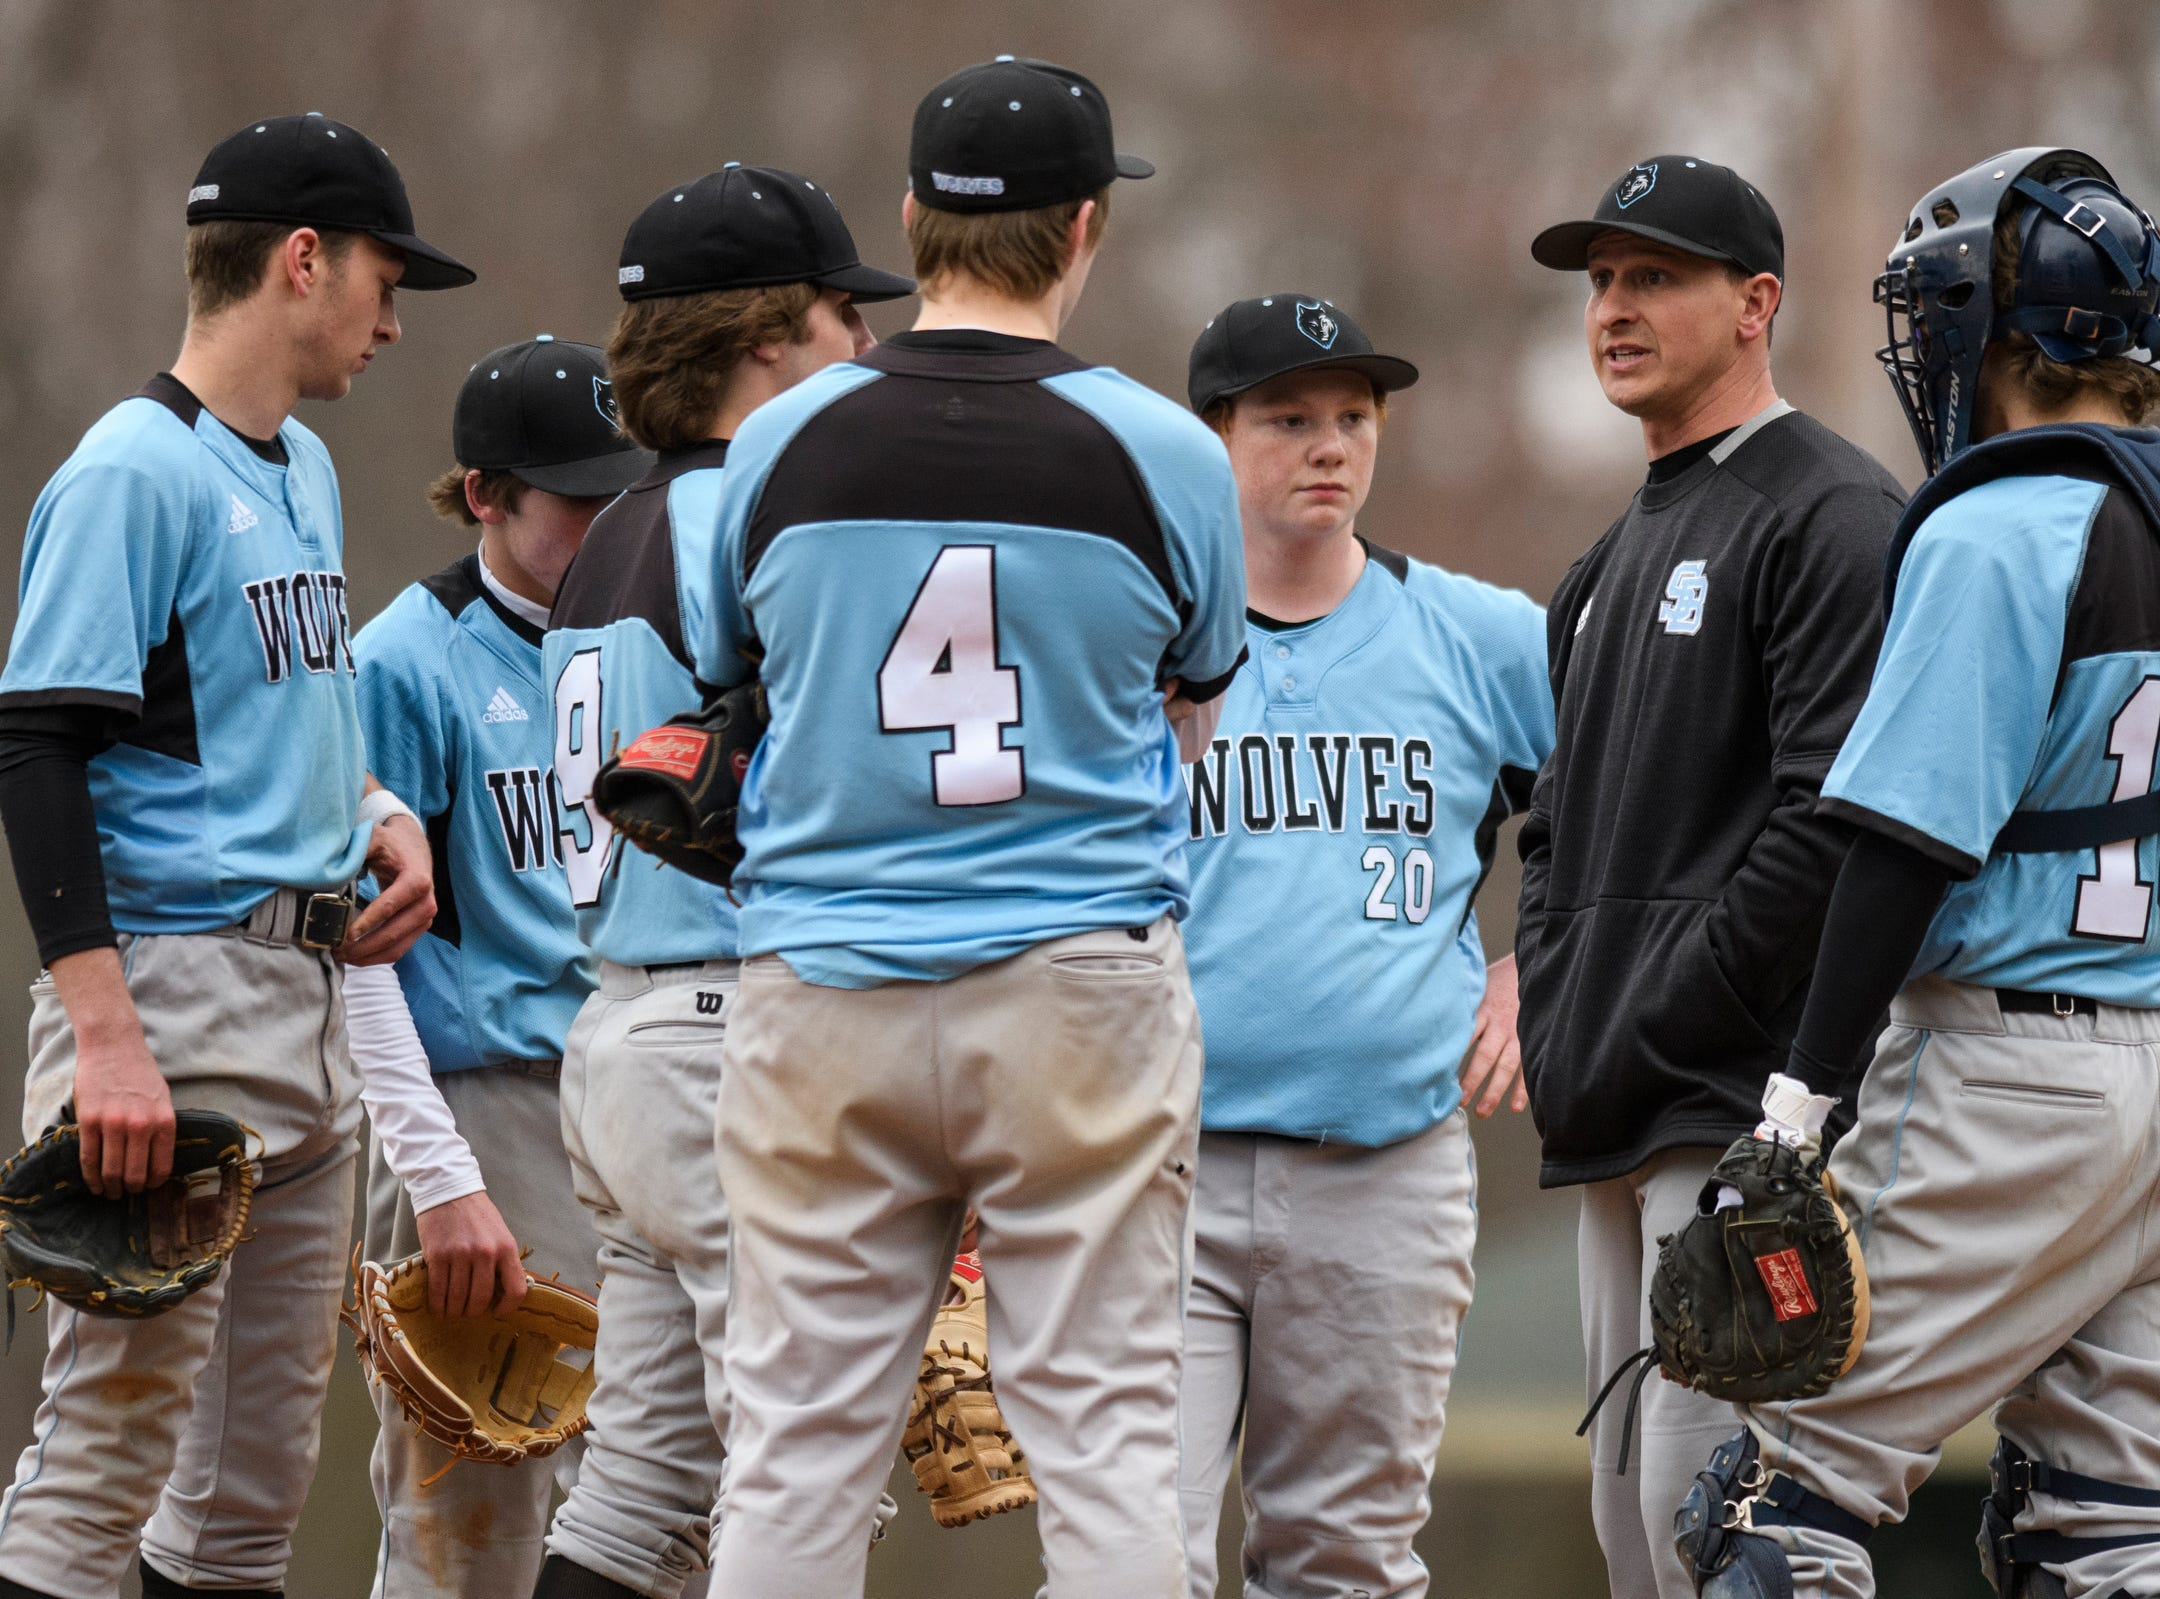 South Burlington head coach Like Goyette talks to the team during the boys baseball game between the South Burlington Wolves and the Colchester Lakers at Colchester high school on Thursday afternoon April 18, 2019 in Colchester, Vermont.